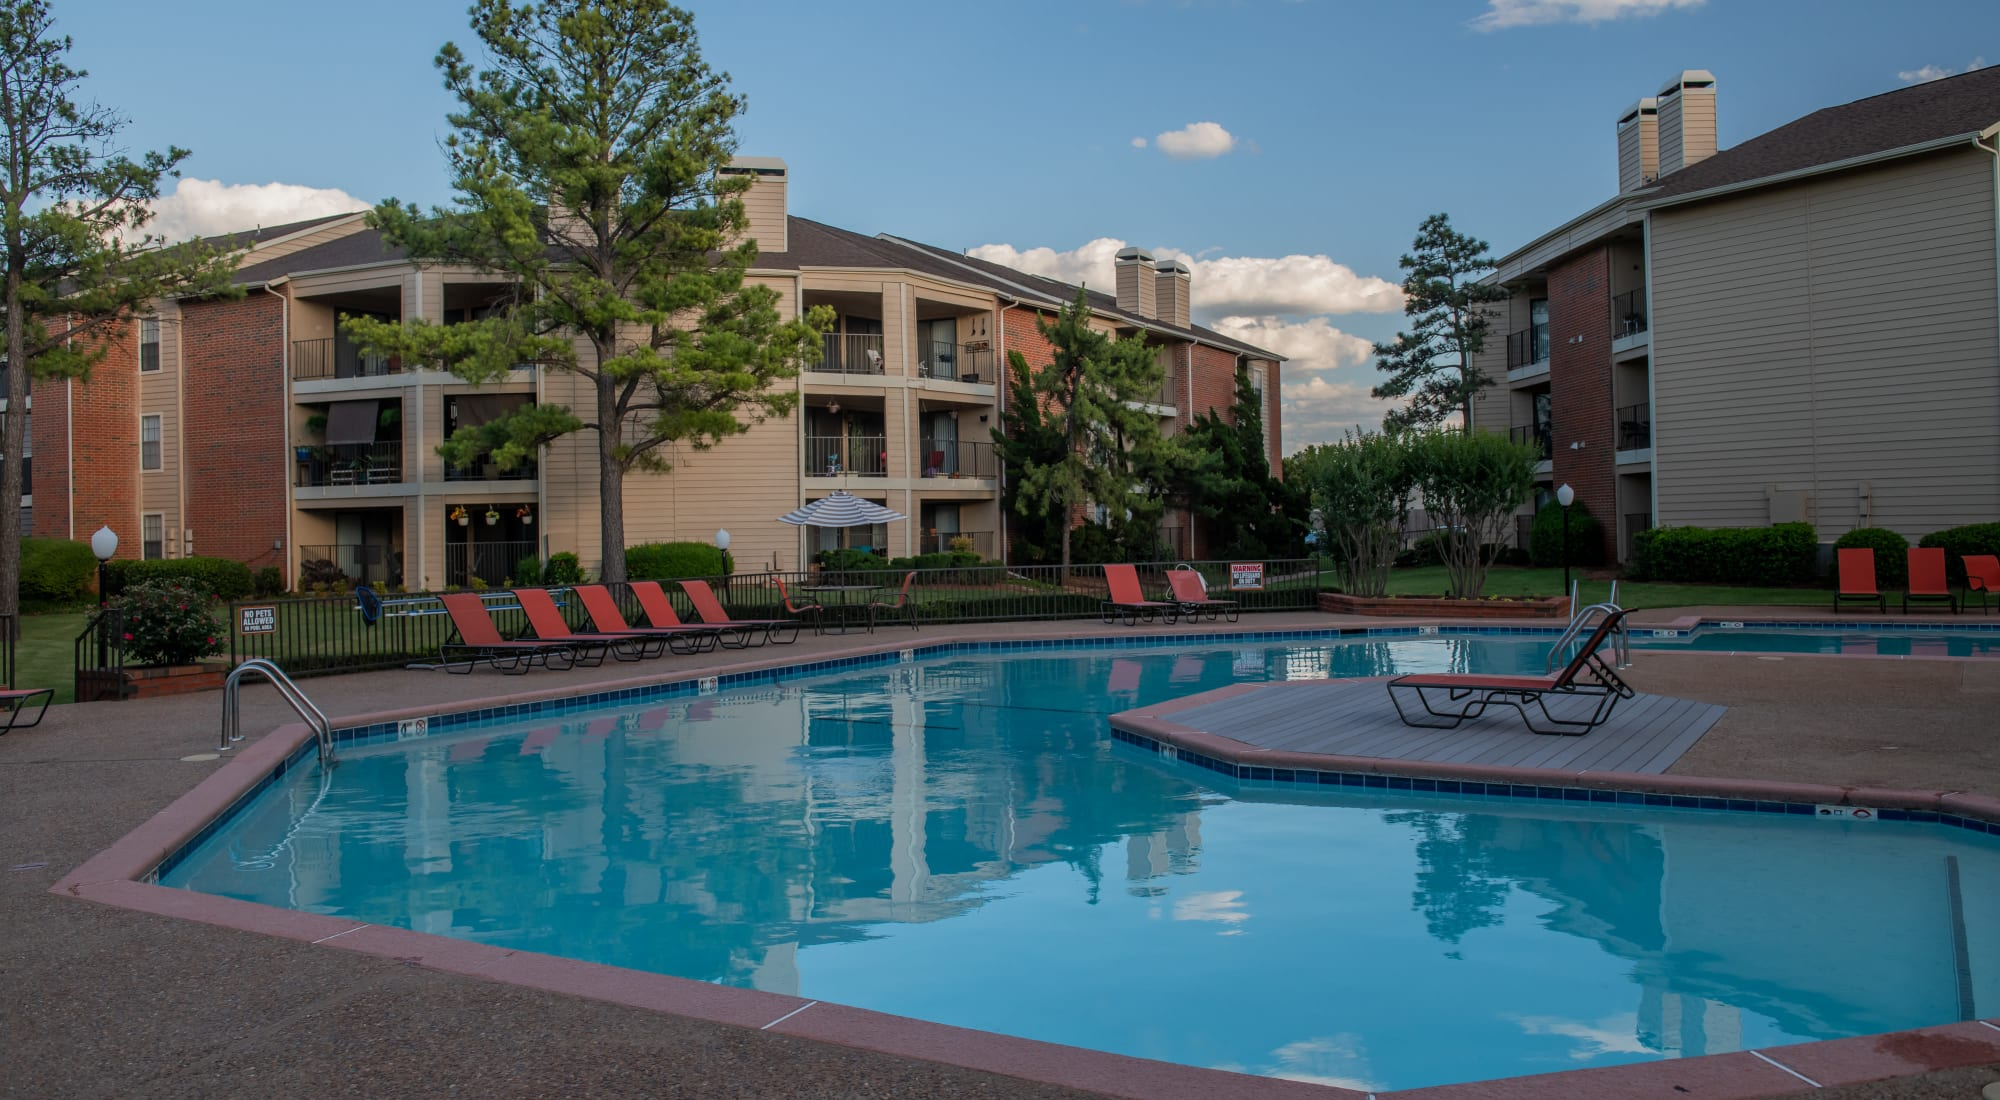 Apartments at Copperfield Apartments in Oklahoma City, Oklahoma